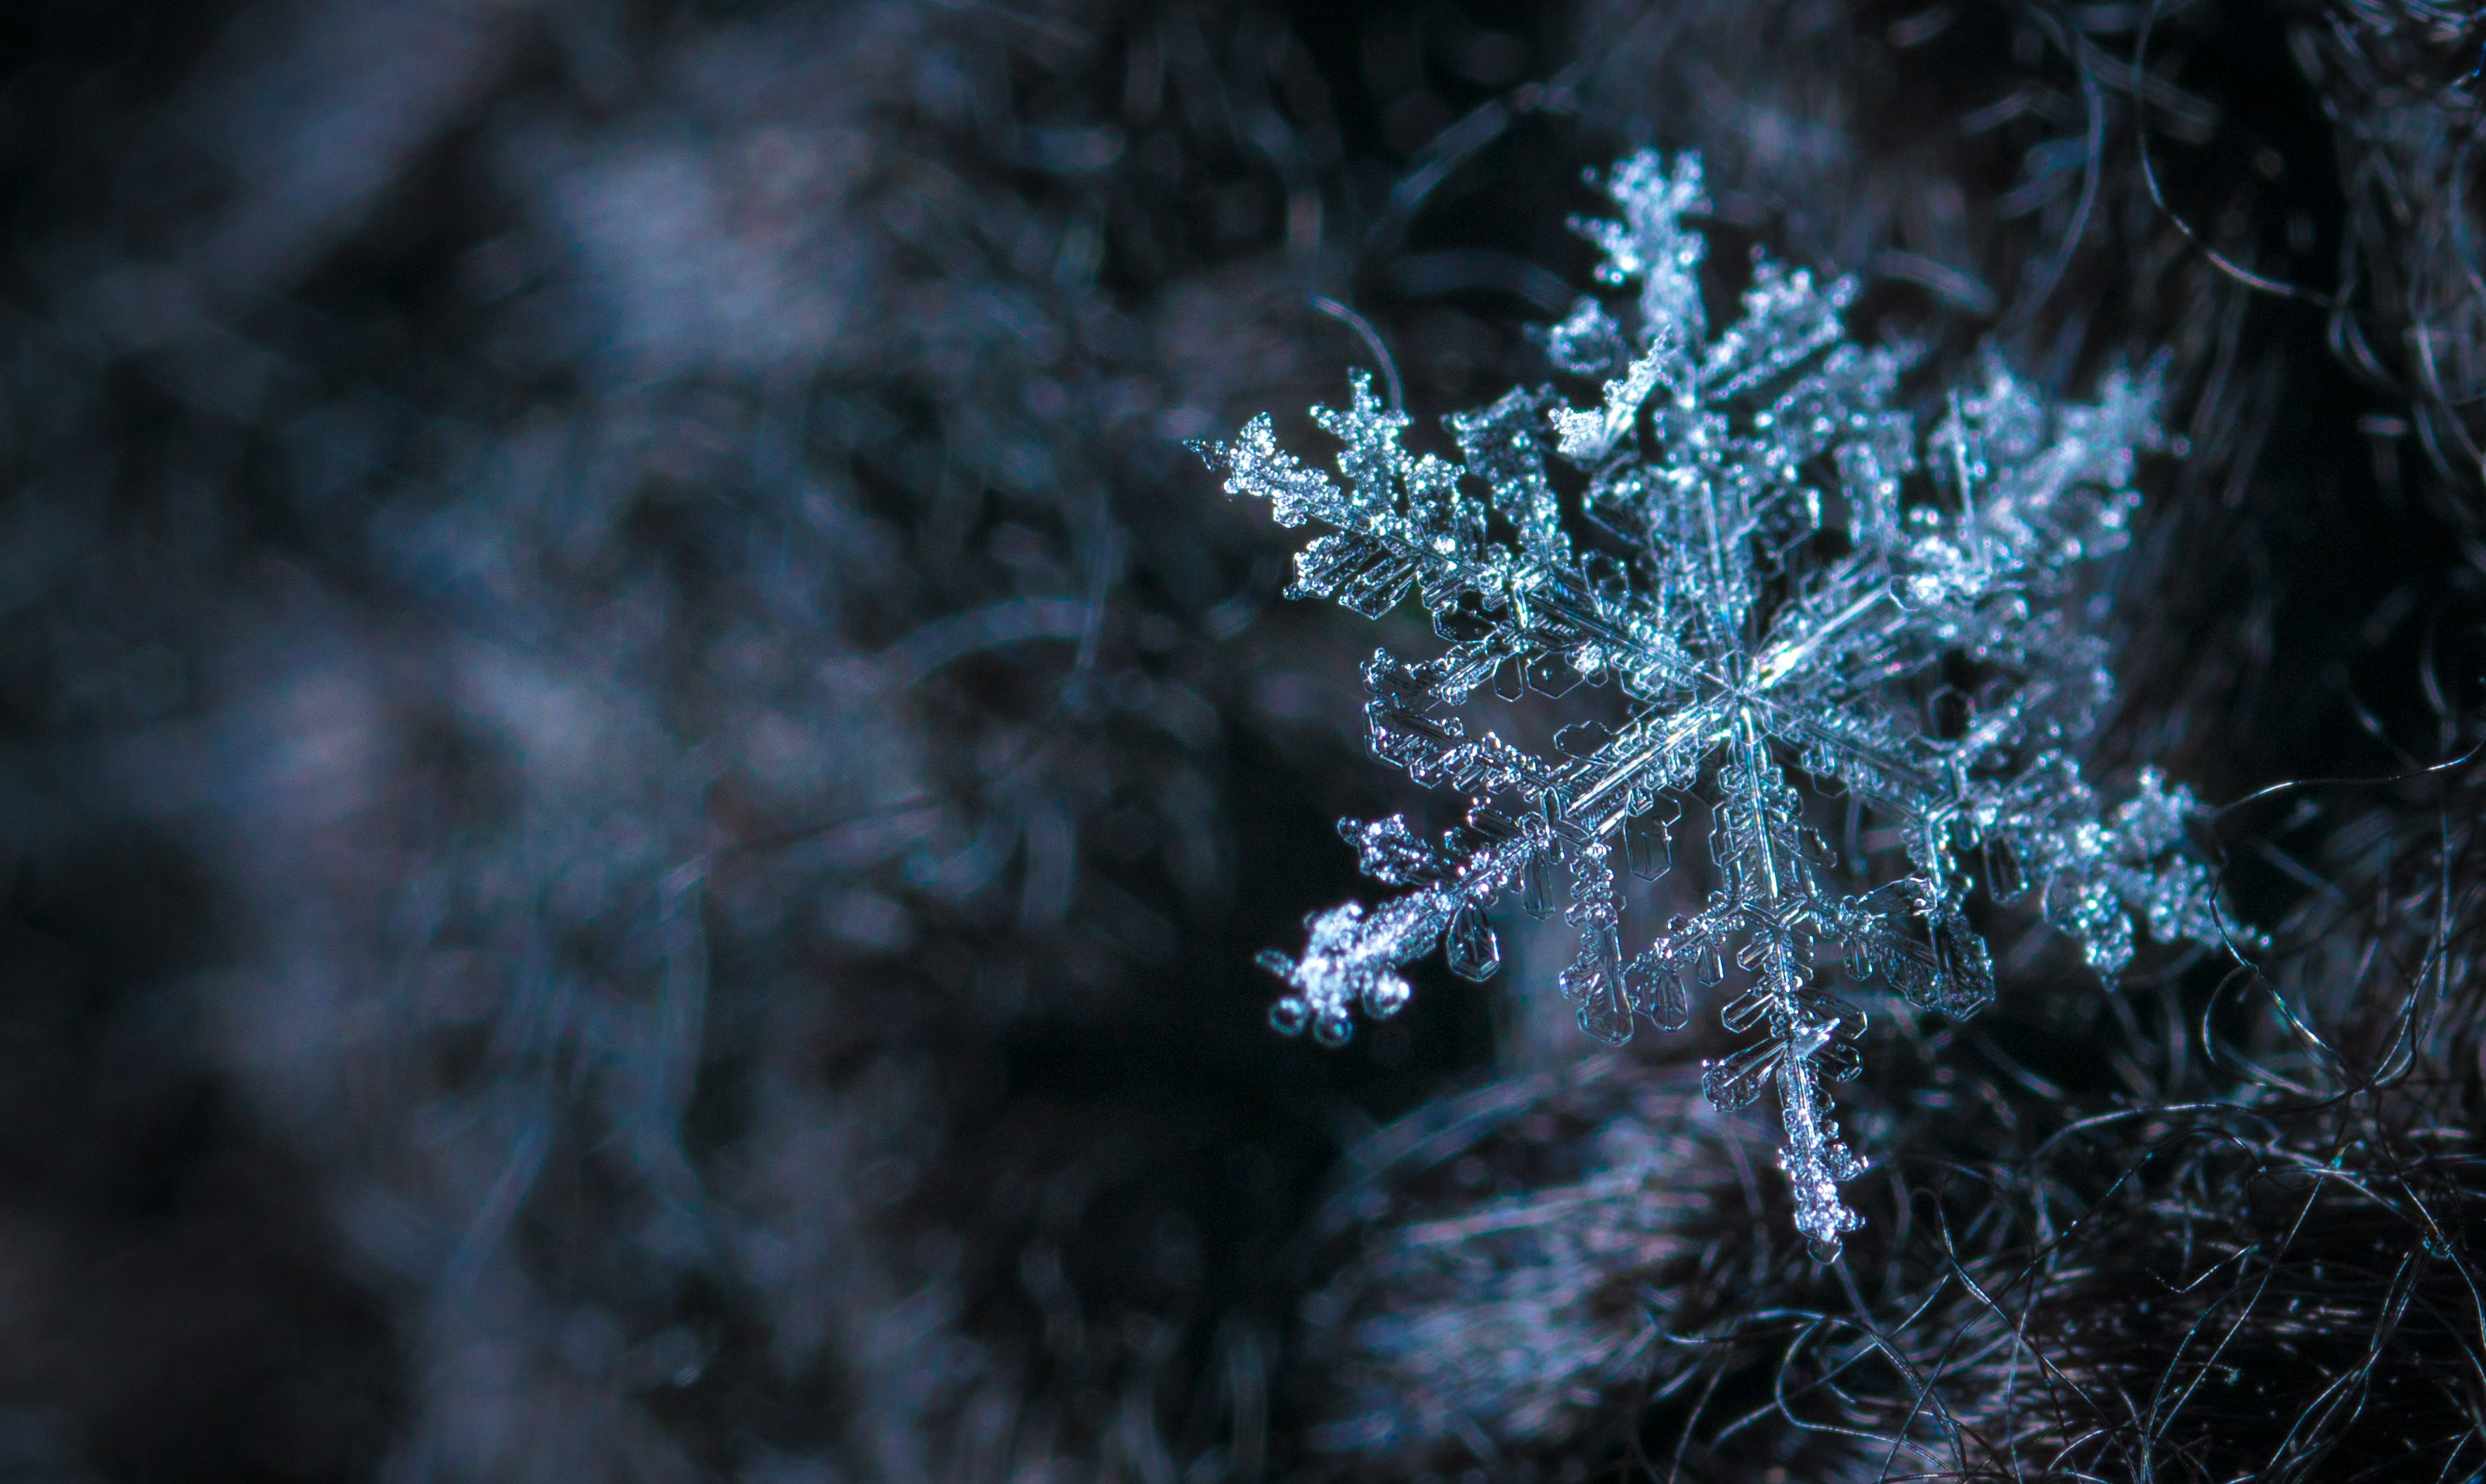 Close-up Photography of Snowflake